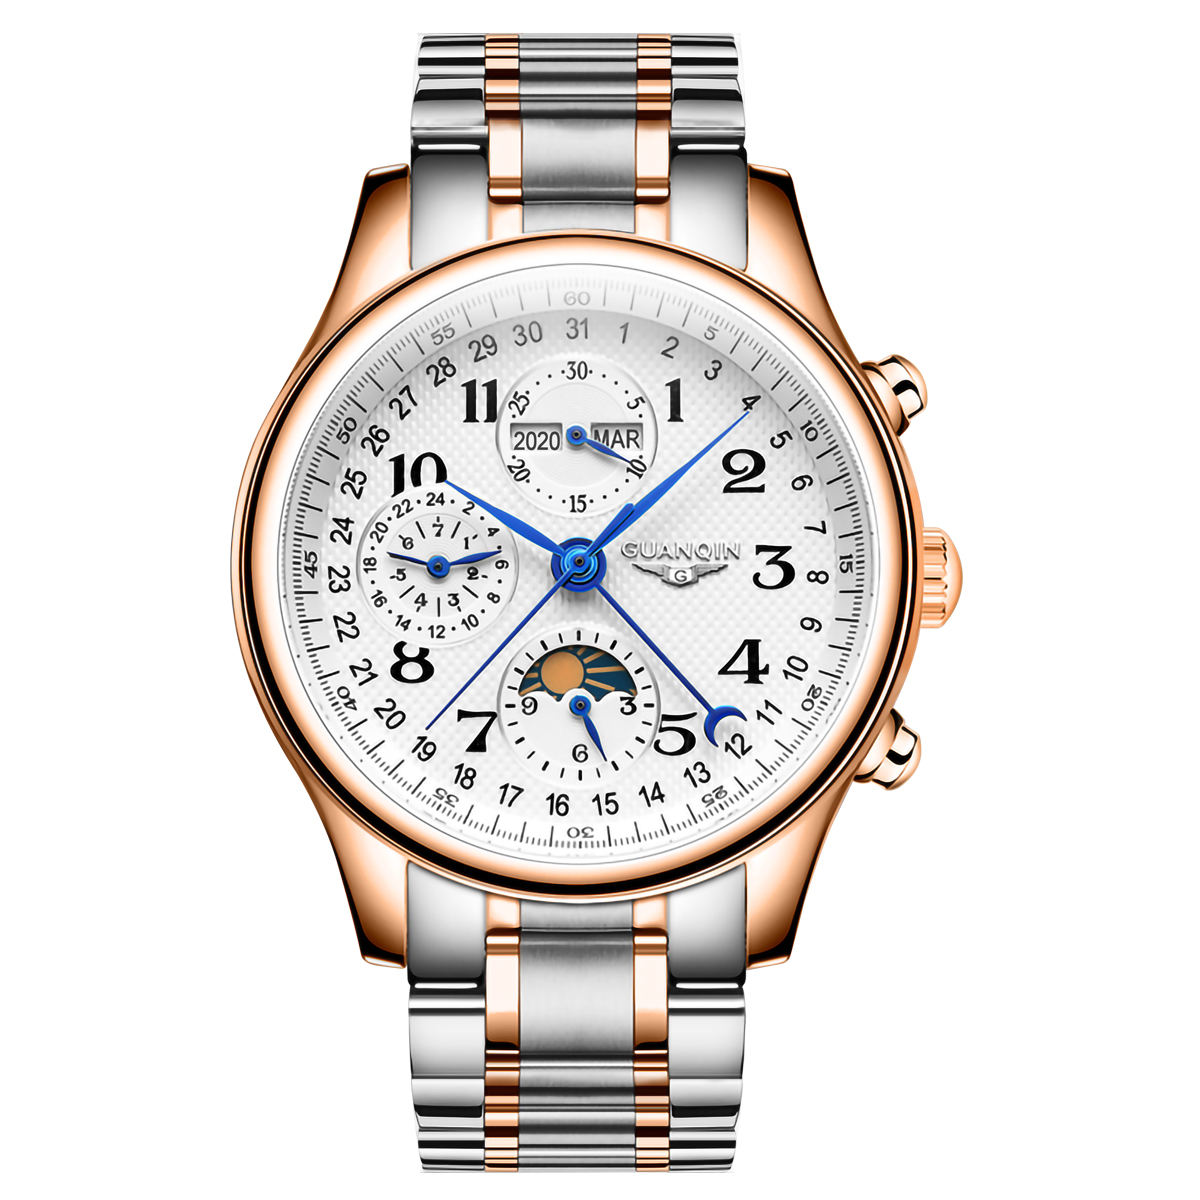 GuanQin Top 10 products Multifunction automatic watches men wrist mens watch Custom watch logo